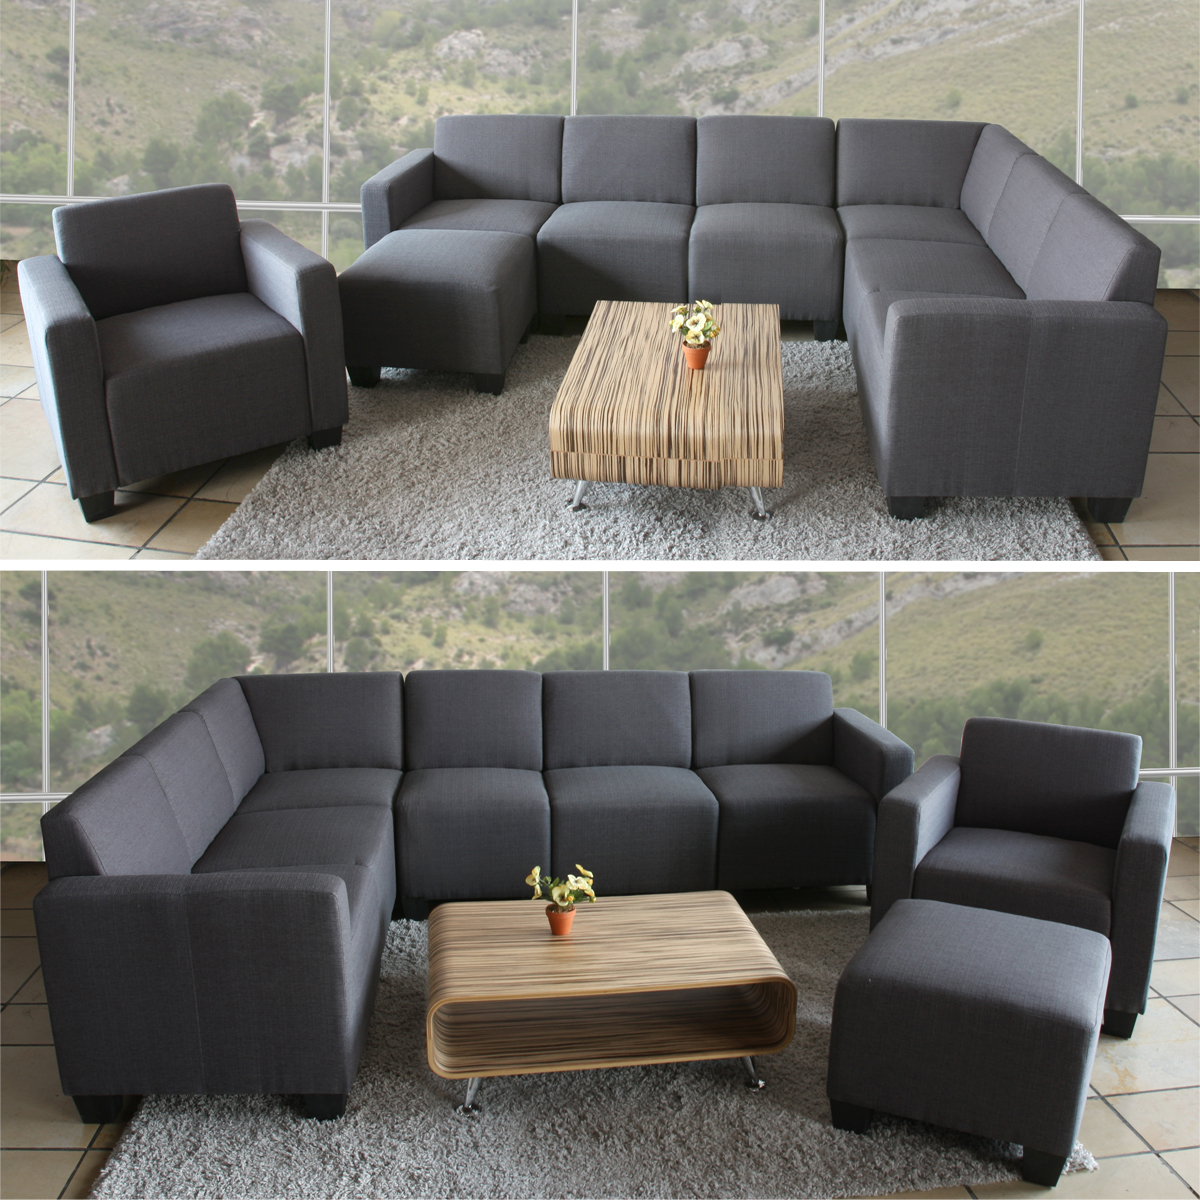 modular sofa system couch garnitur lyon 6 2 textil anthrazit ebay. Black Bedroom Furniture Sets. Home Design Ideas